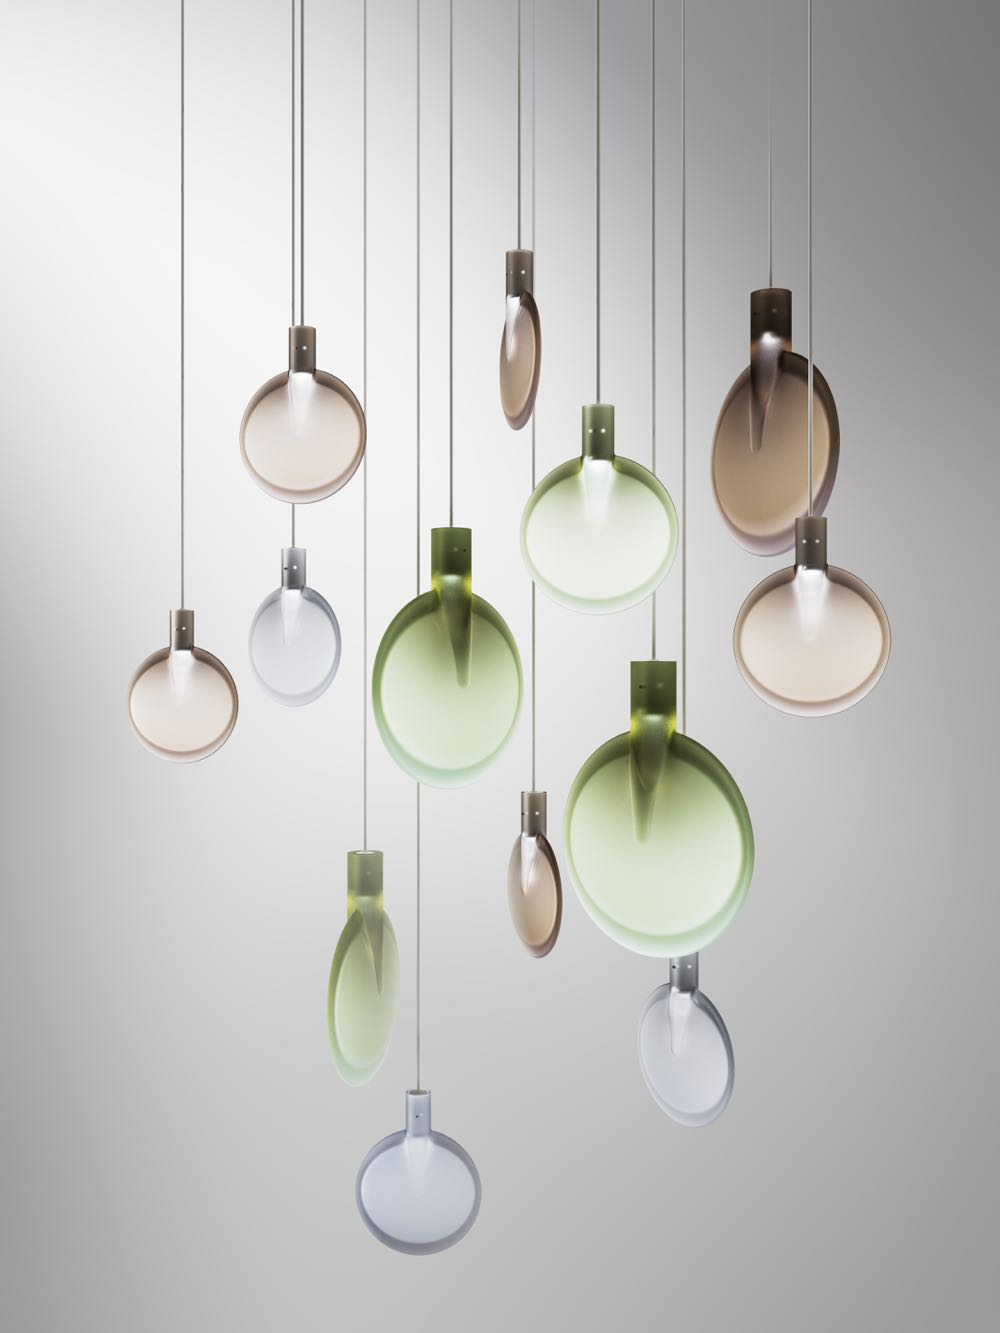 'Nebra' pendant light by Sebastian Herkner for FontanaArte.